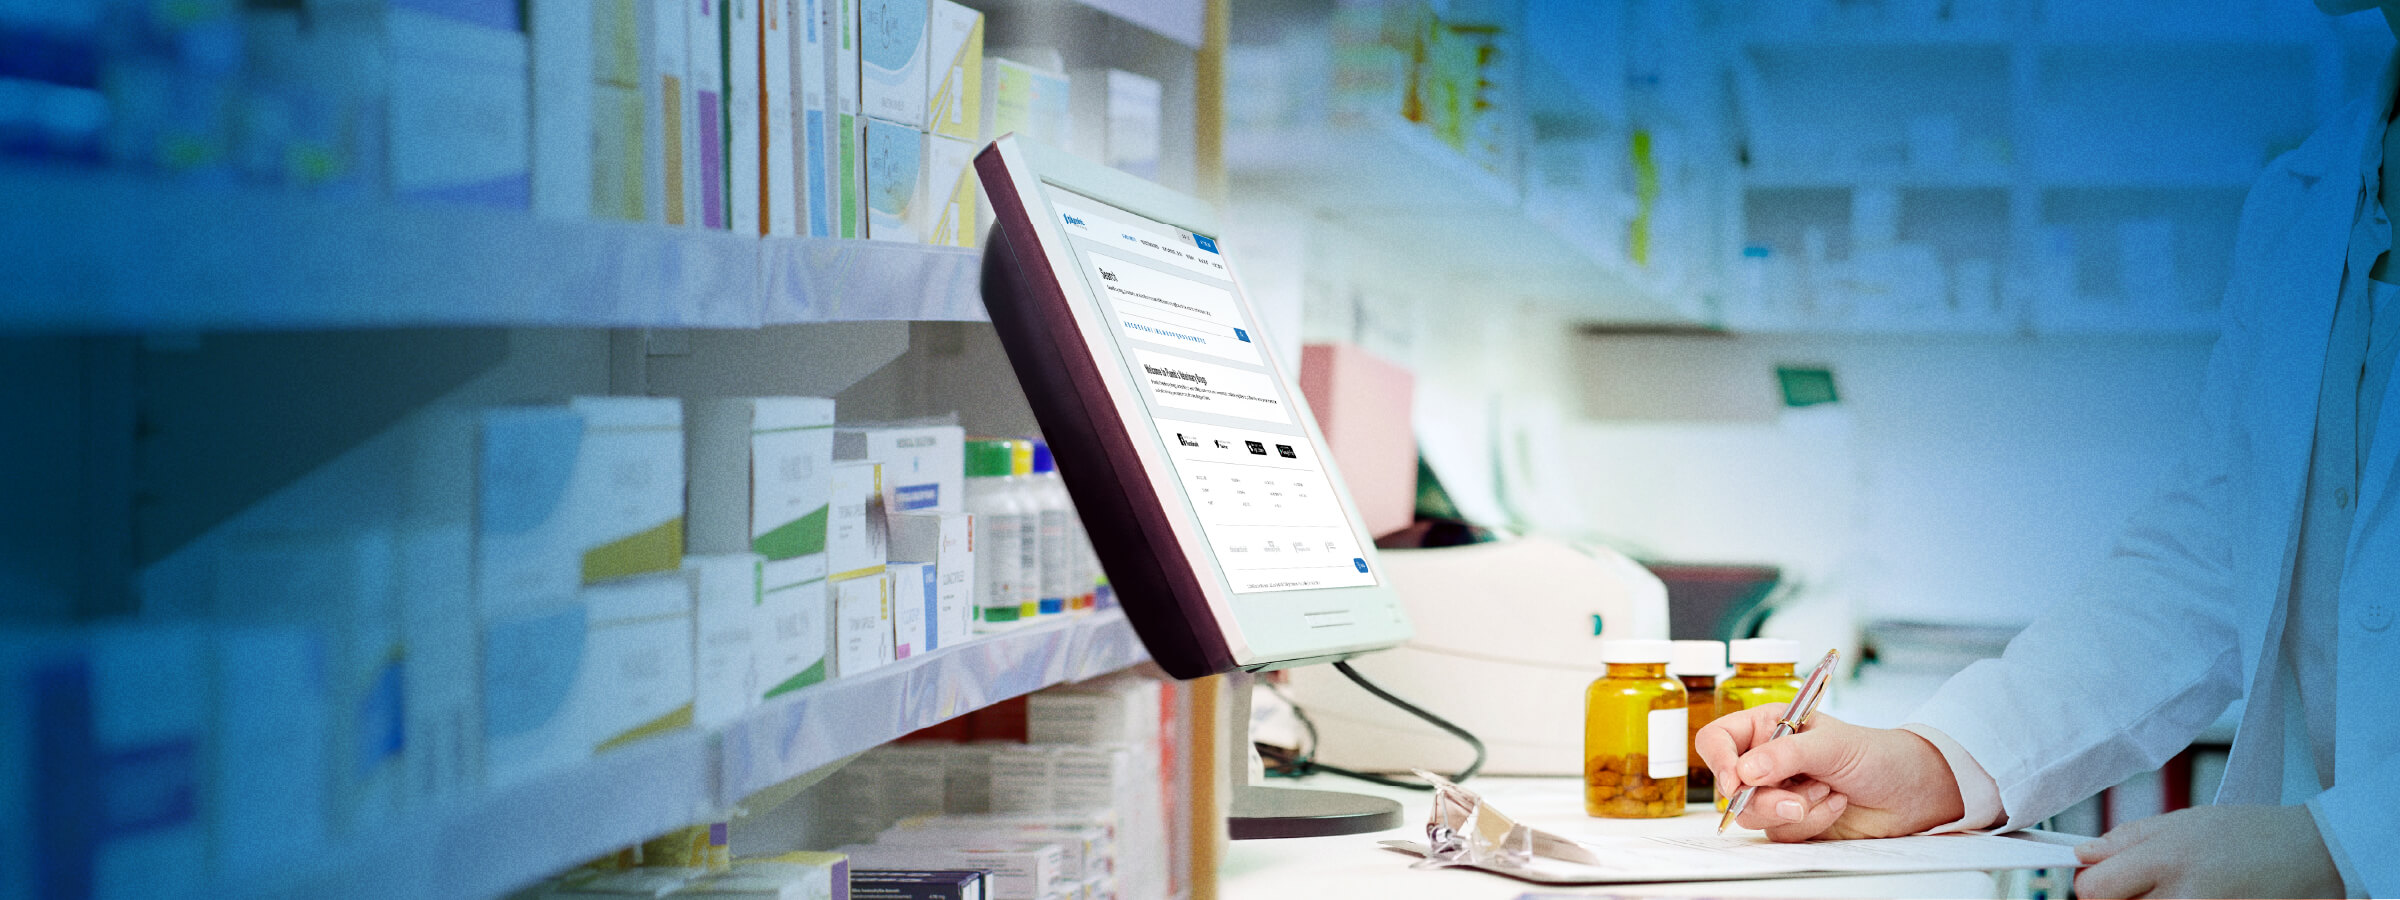 First Veterinary Drug Reference to Provide Online Access for Pharmacists